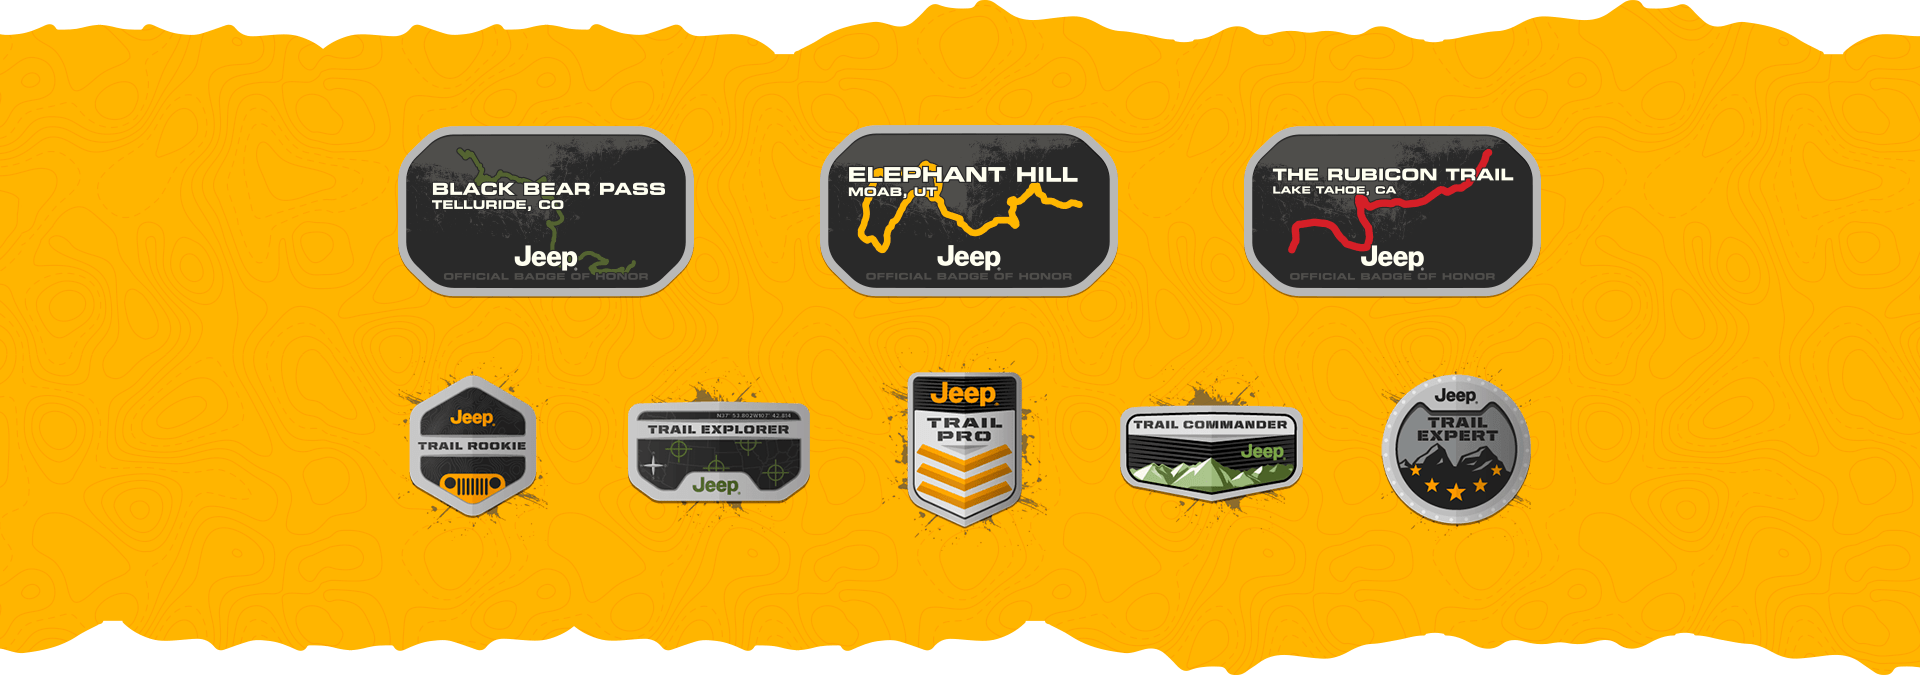 Jeep-Badges-Ranks-yellow-2